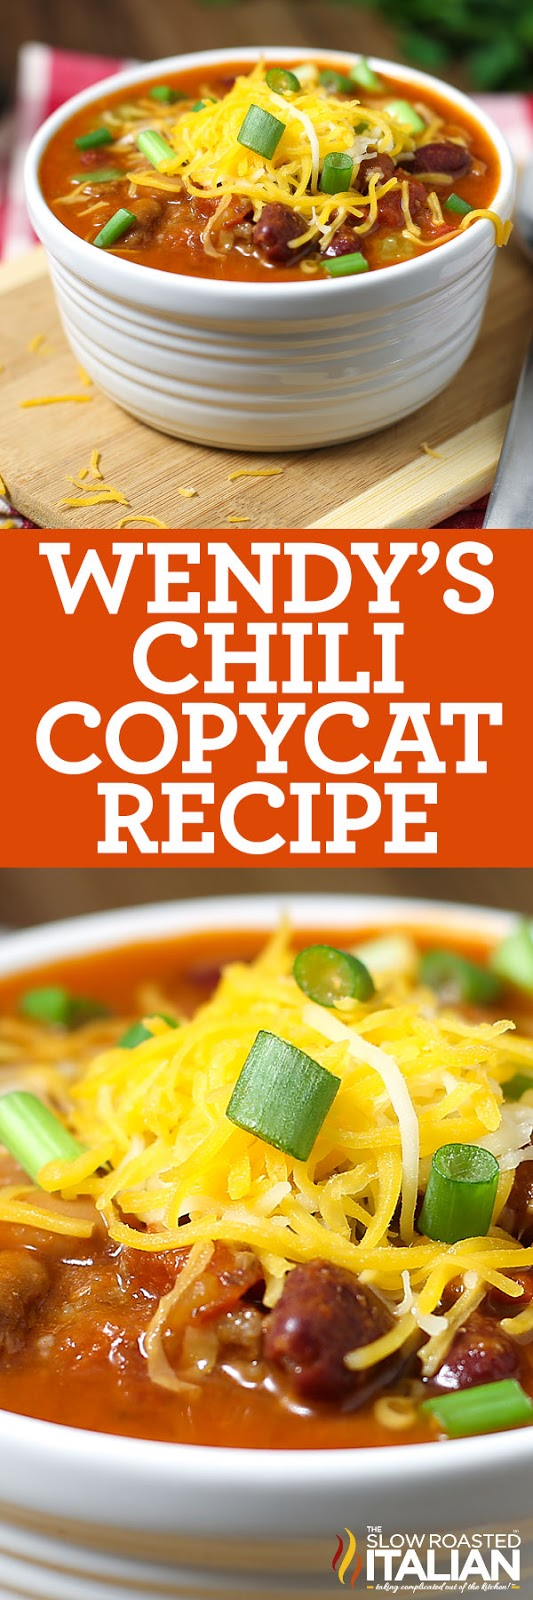 titled photo collage (and shown): Wendy's Chili Copycat Recipe